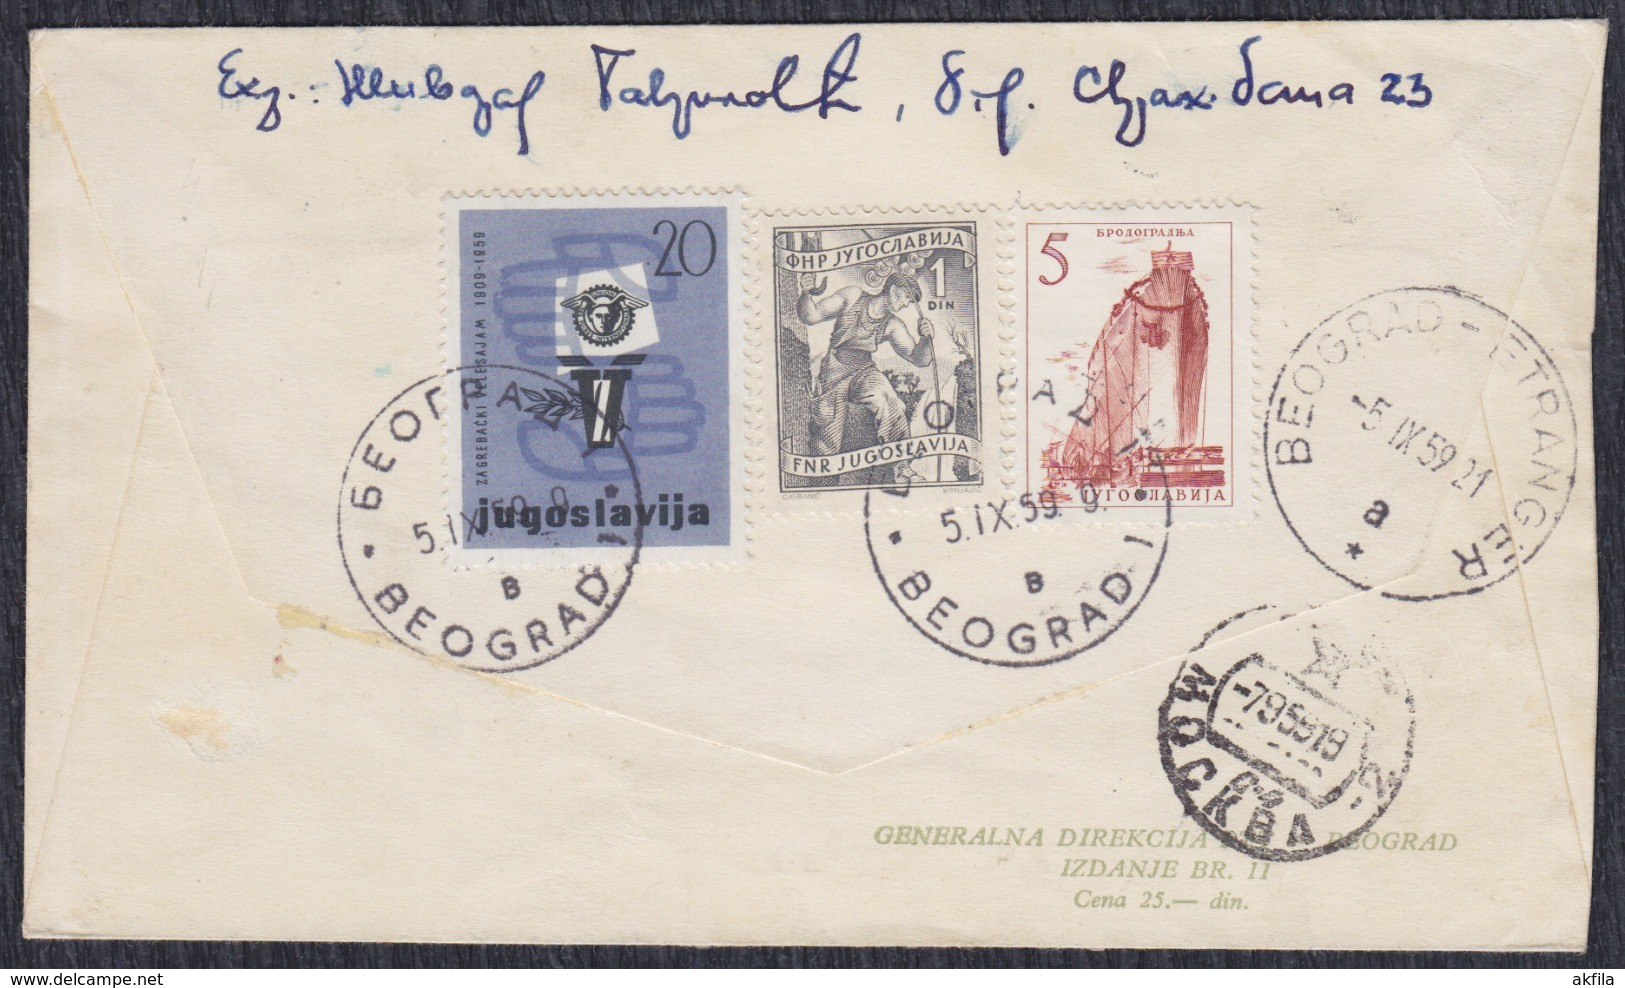 Yugoslavia 1959 Registered Airmail Letter Sent From Beograd To Moscow - 1945-1992 Socialist Federal Republic Of Yugoslavia